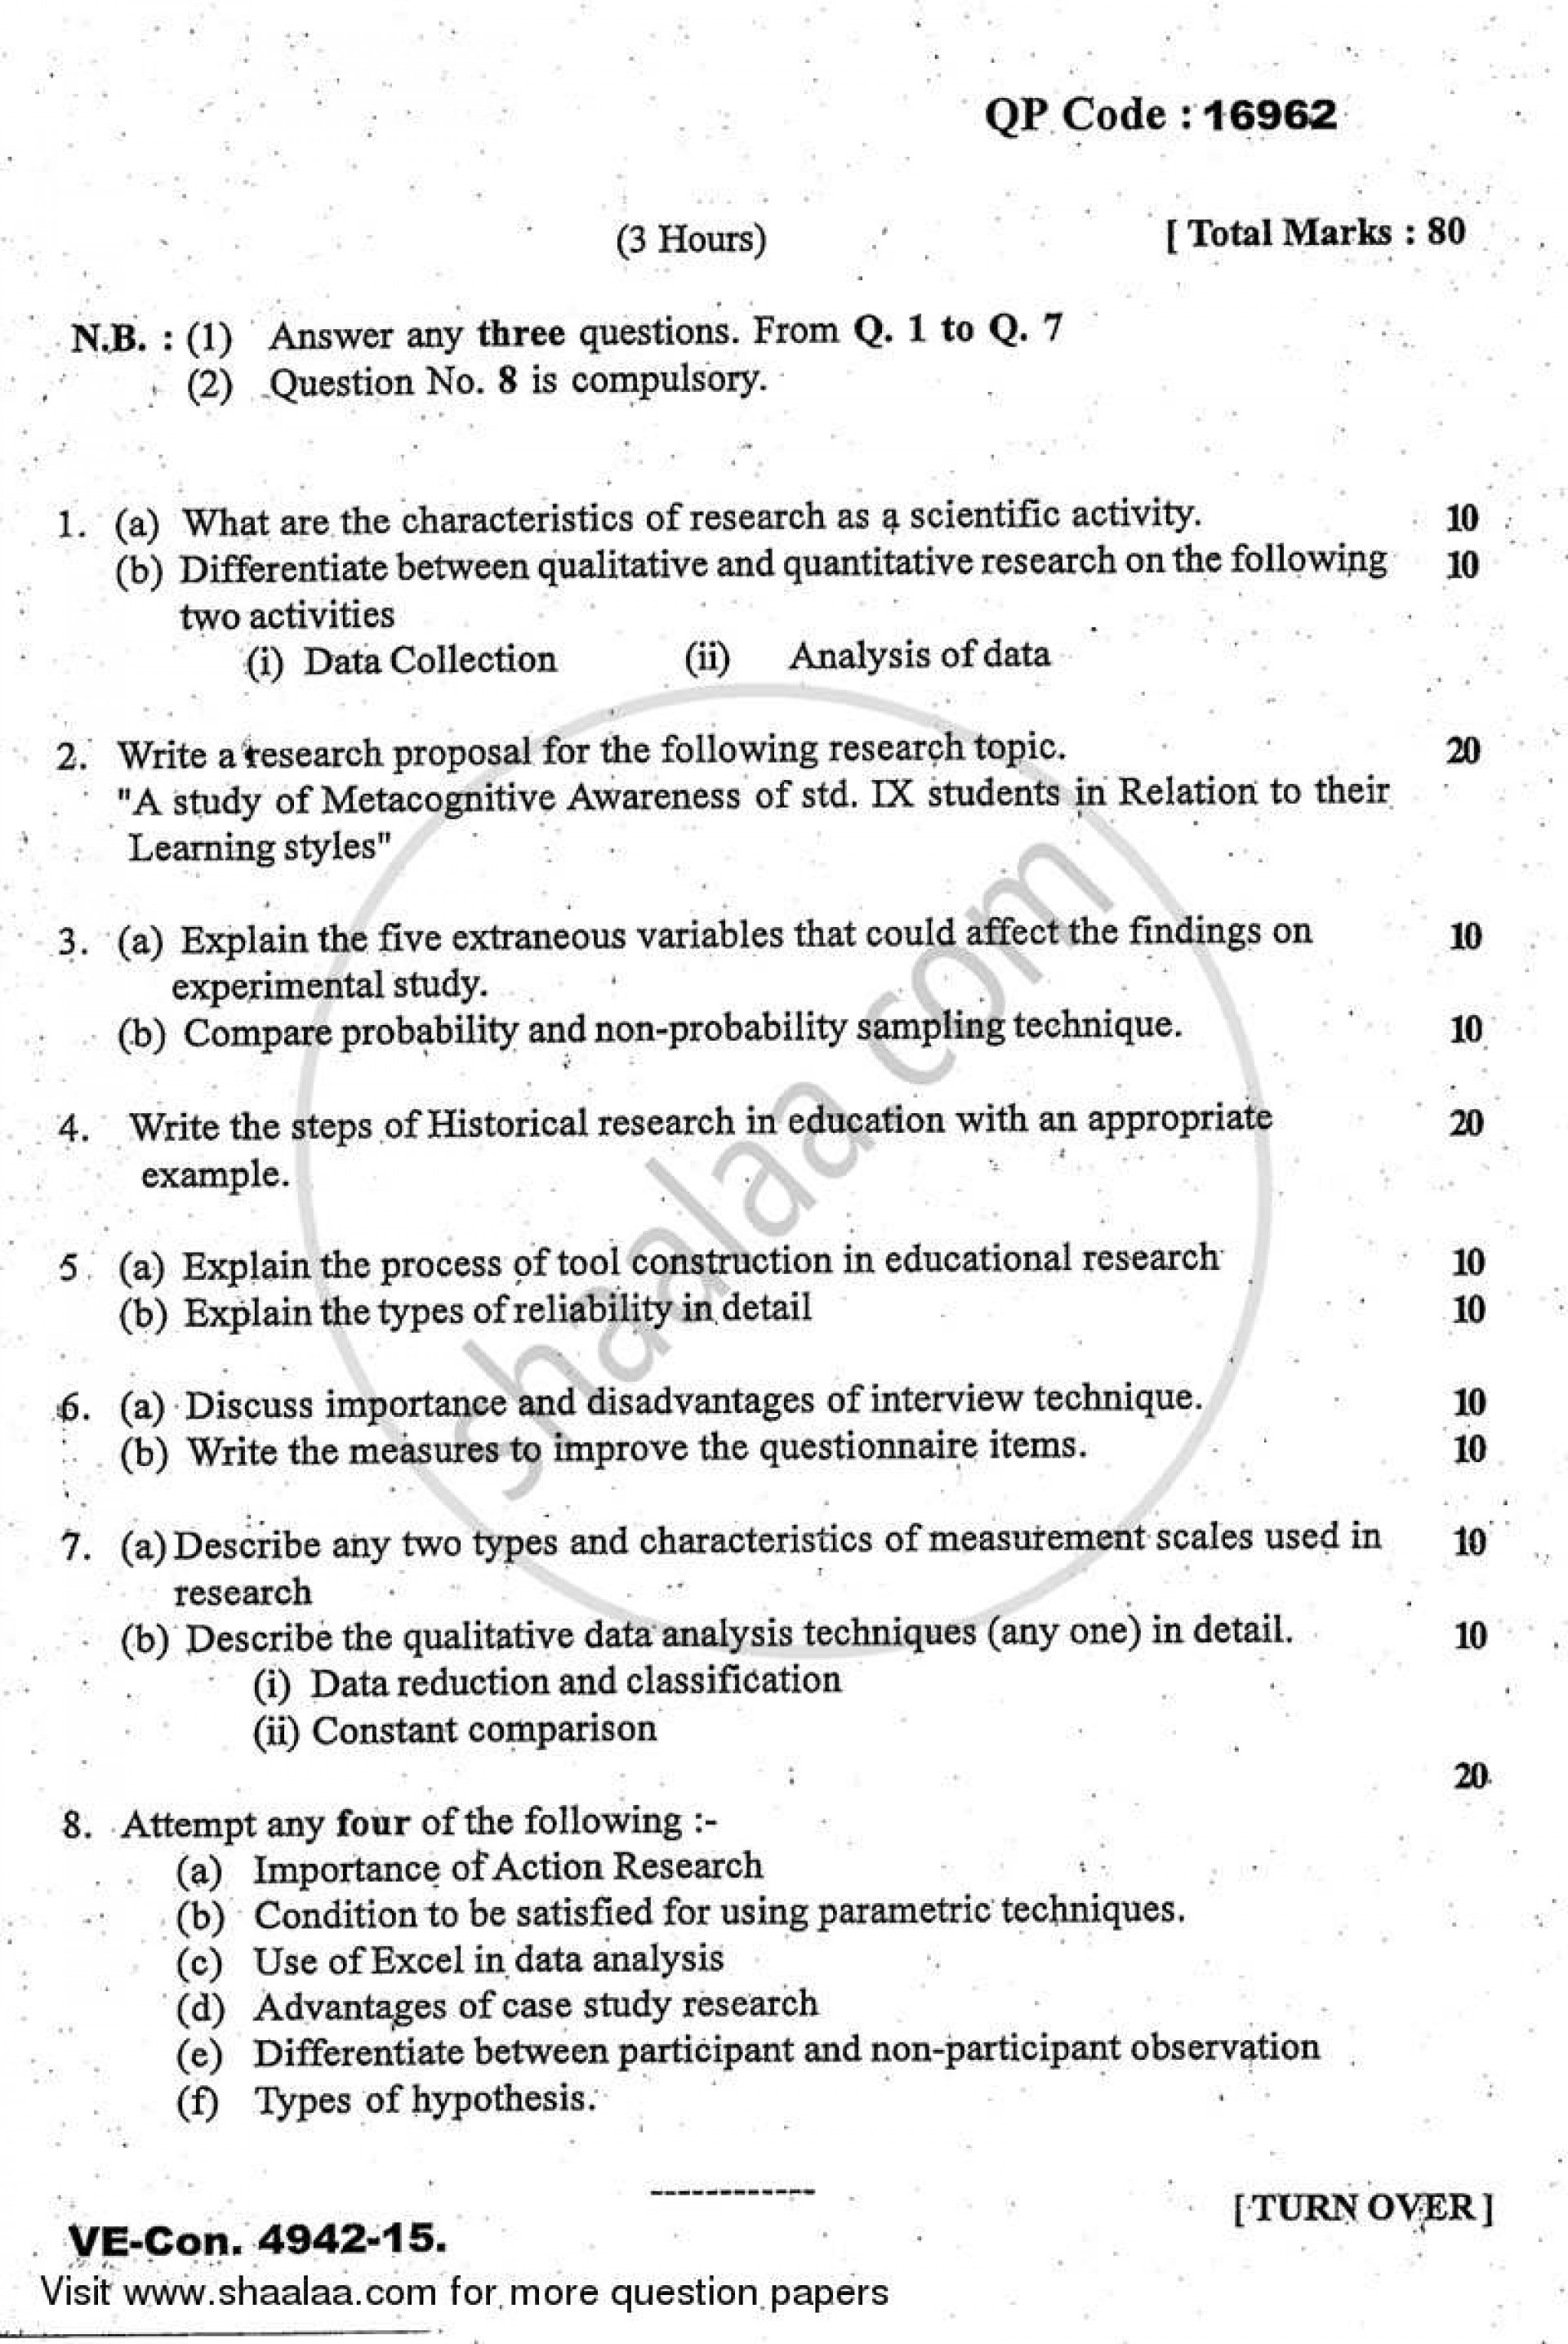 006 Educational Research Past Exams University Of Mumbai Master Ma Methodology Education Yearly Pattern Part 2015 2b713b81467684597a5dc66013a64e0a3 Amazing Exam Papers 1920